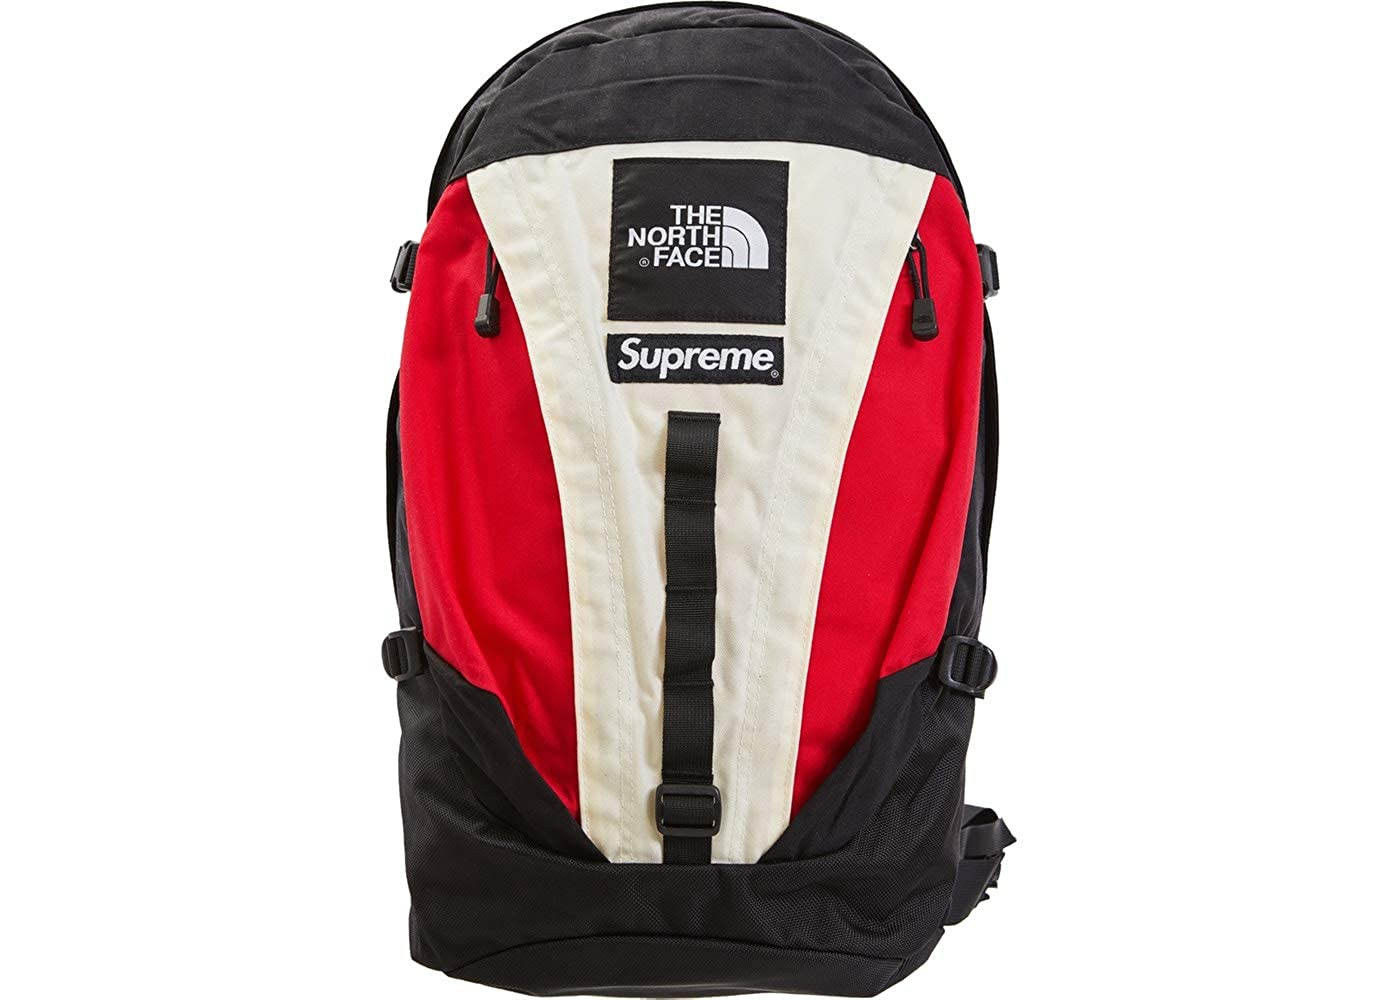 Supreme/North Face Expedition Backpack White 18FW シュプリーム/ノースフェイス エクスペディション バックパック (アメリカ正規並行輸入品) [並行輸入品] B07NDQ15HP